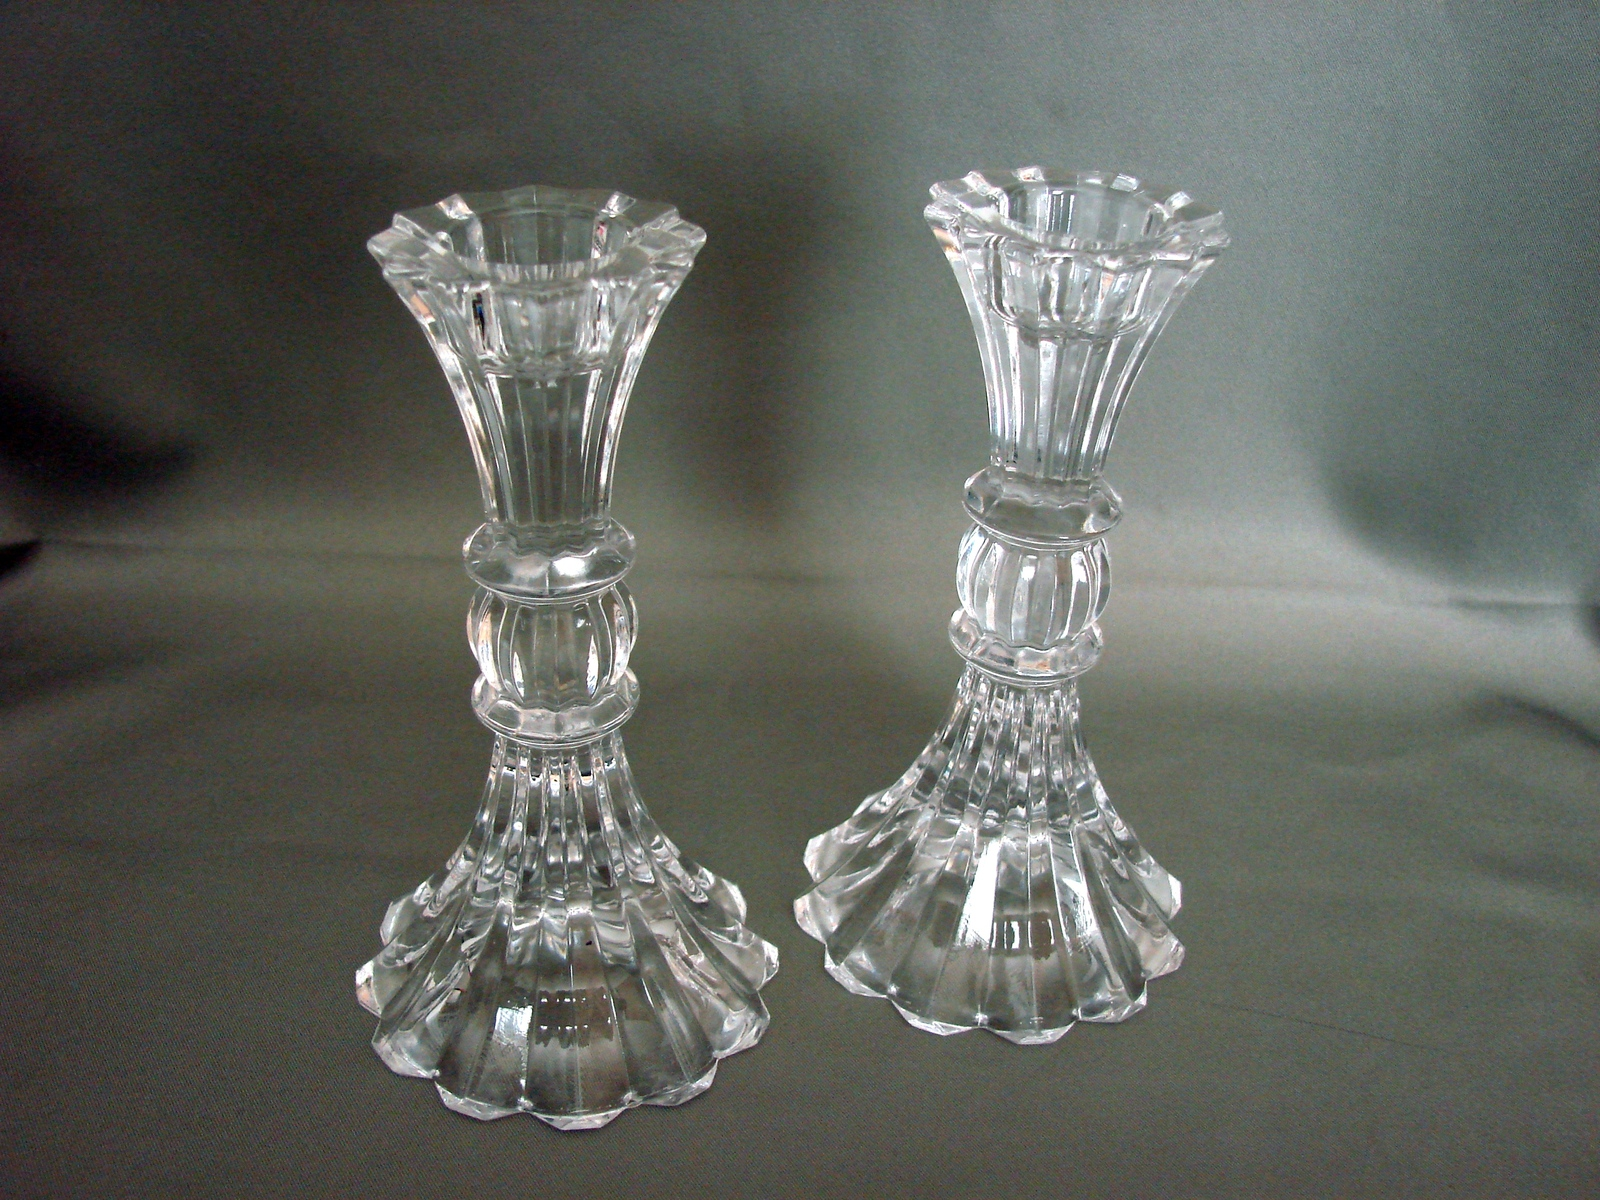 Mikasa Sterling Pattern Candle Holders Set of 2 Retired 1998 - $19.90